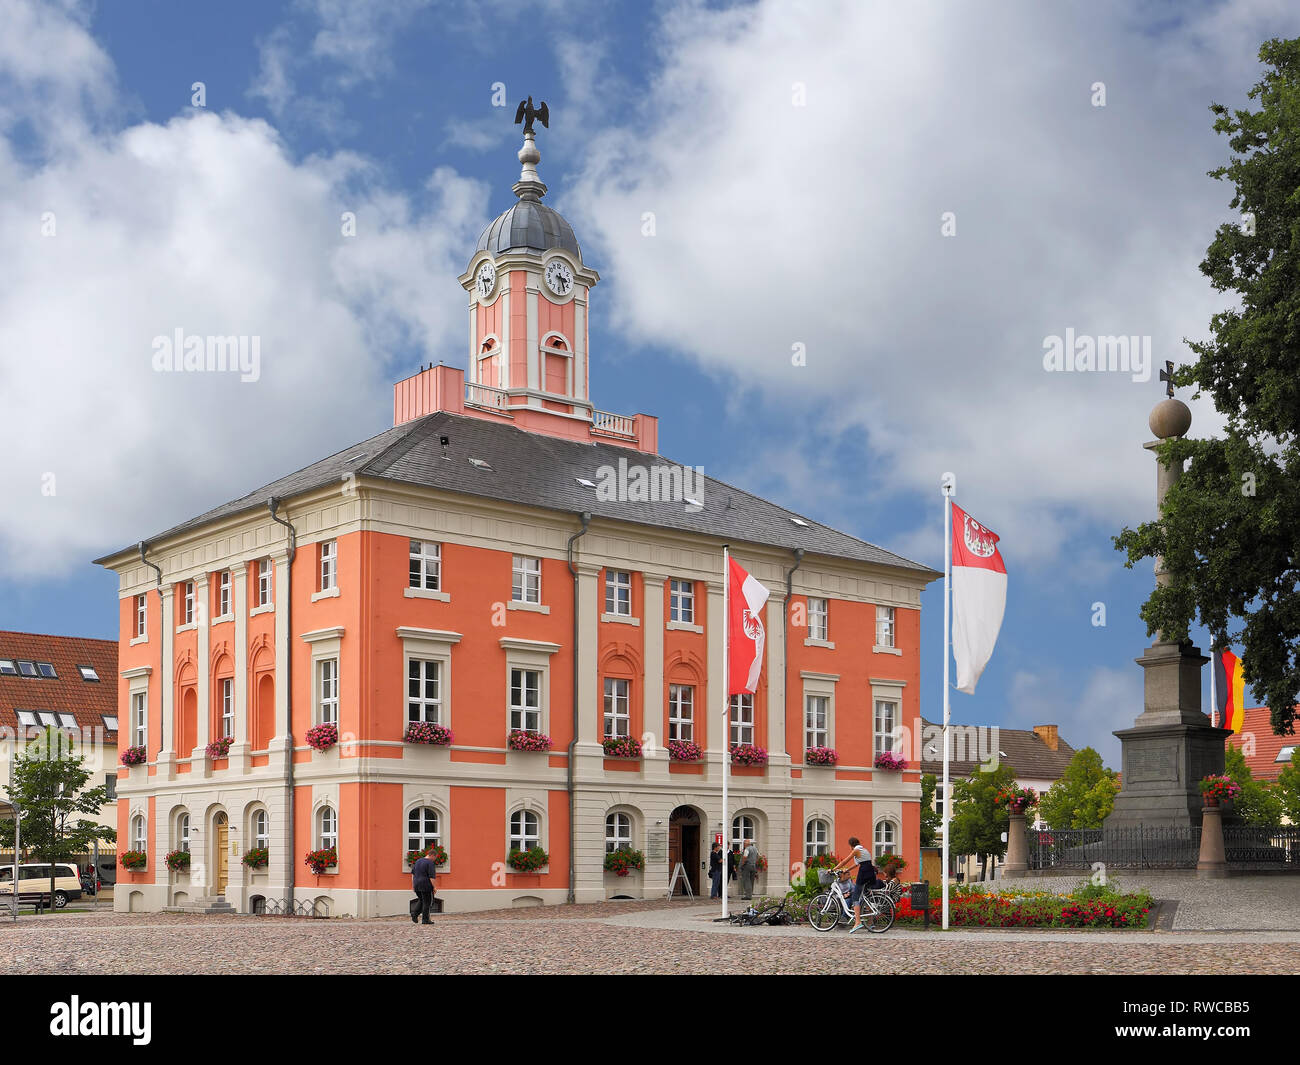 The Baroque town hall of Templin, a small town in the Uckermark in GErmany - Stock Image